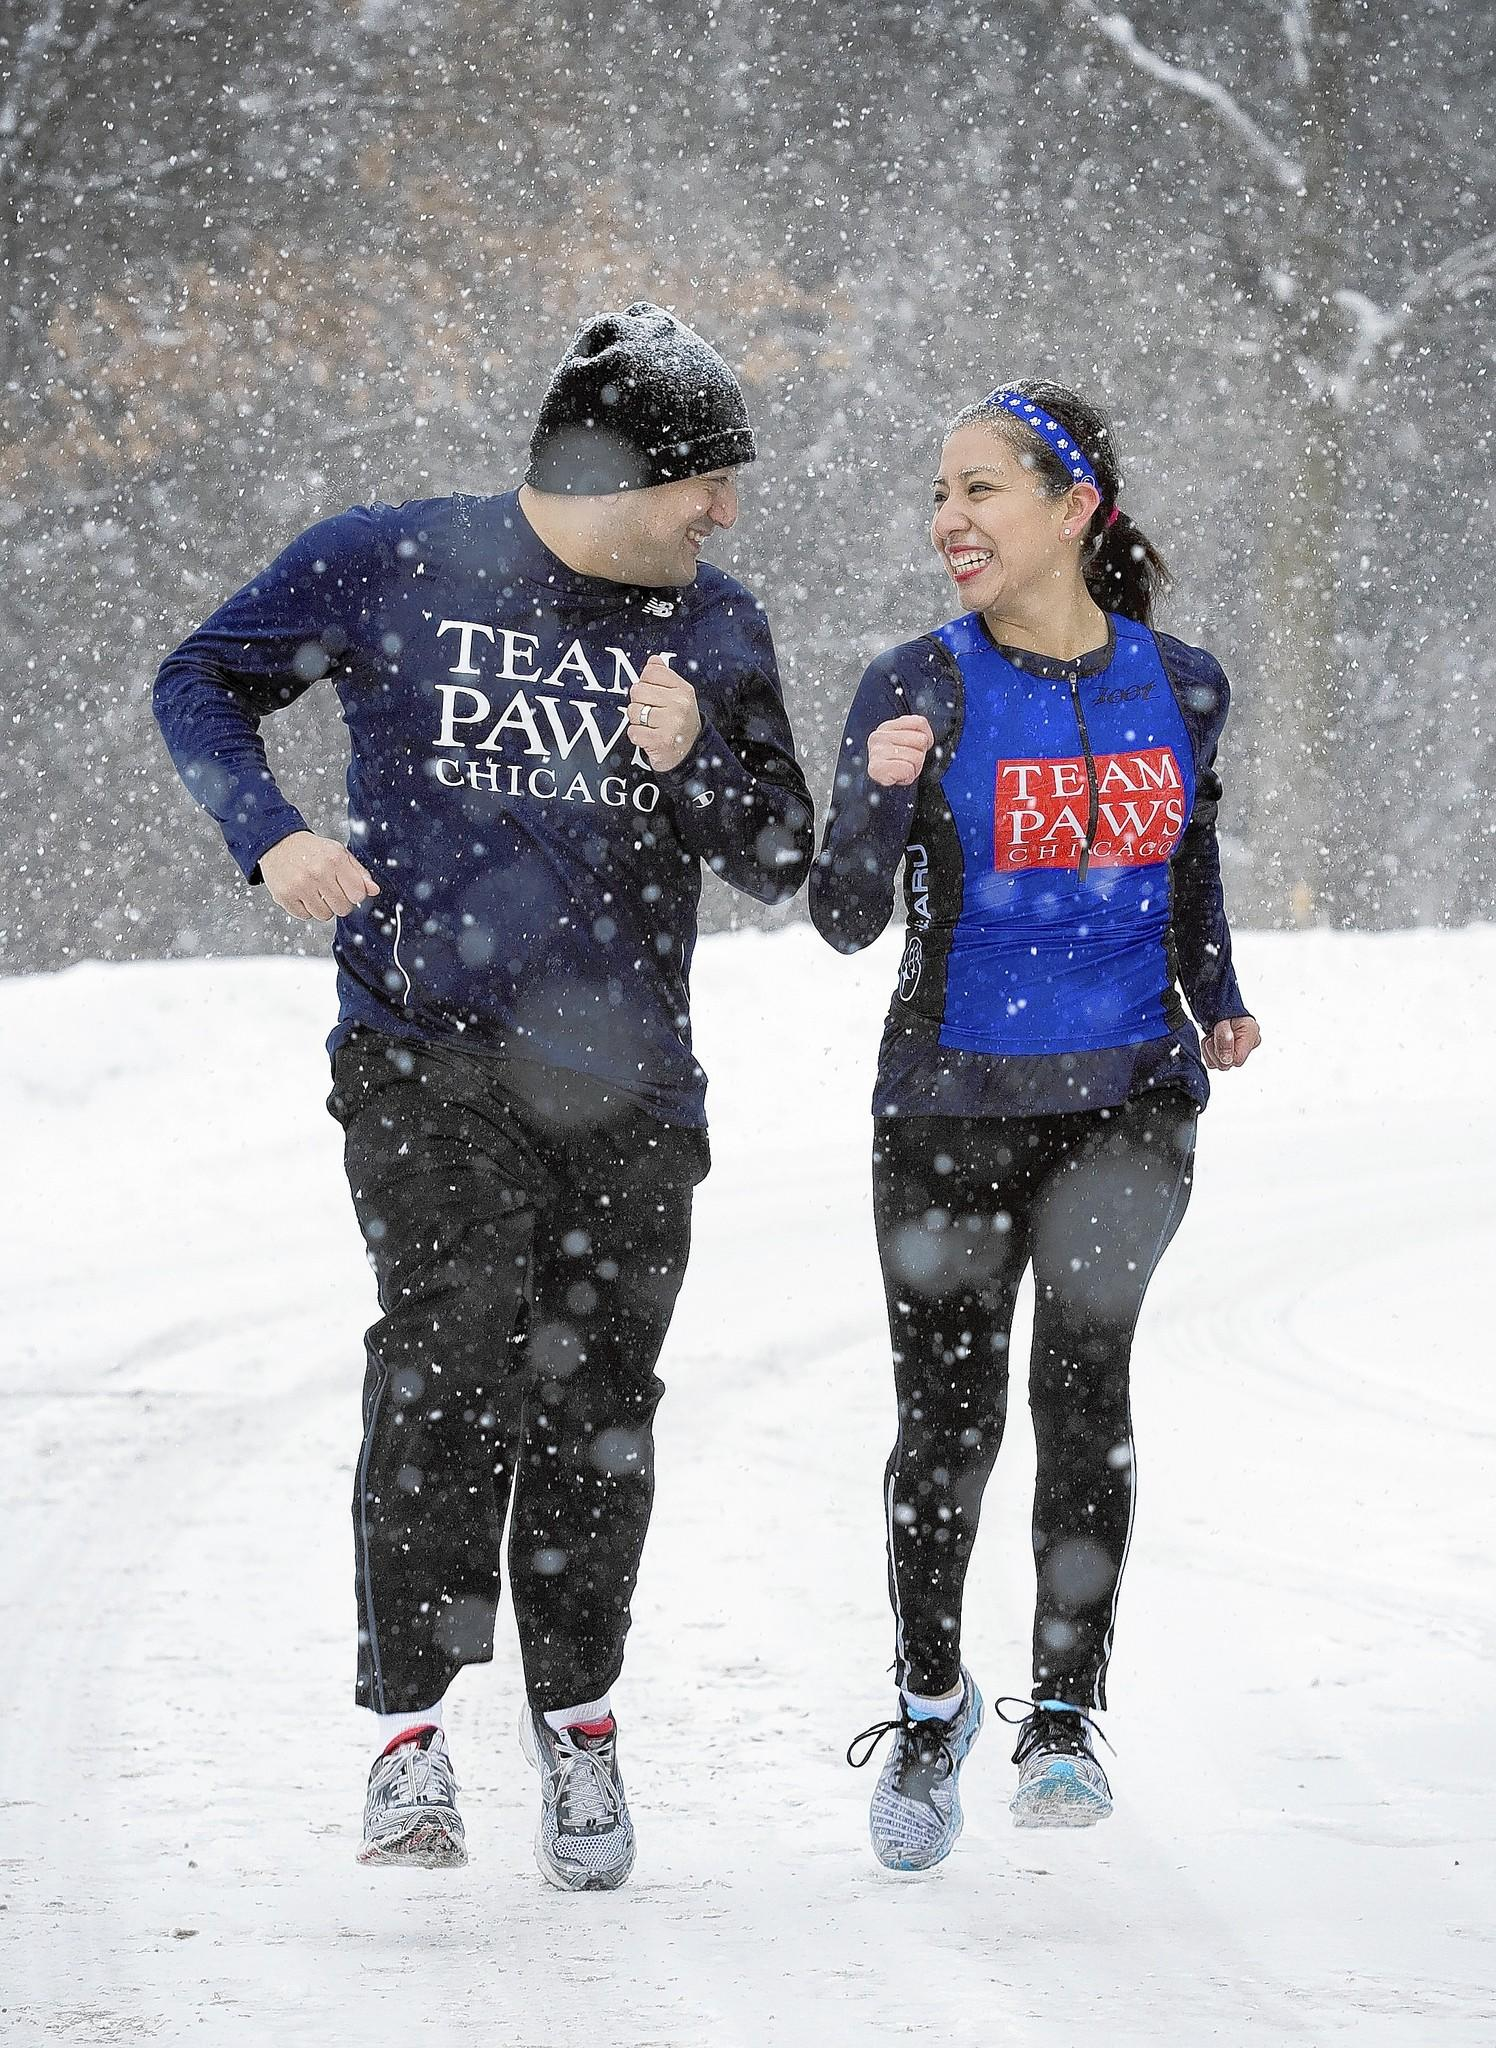 Lionel and Daniela Garcia of Round Lake take a snowy jog near their home on Saturday, Feb. 8, 2014. The Garcias are die-hard runners and newlyweds. After their January wedding at Disney World, they ran a marathon.